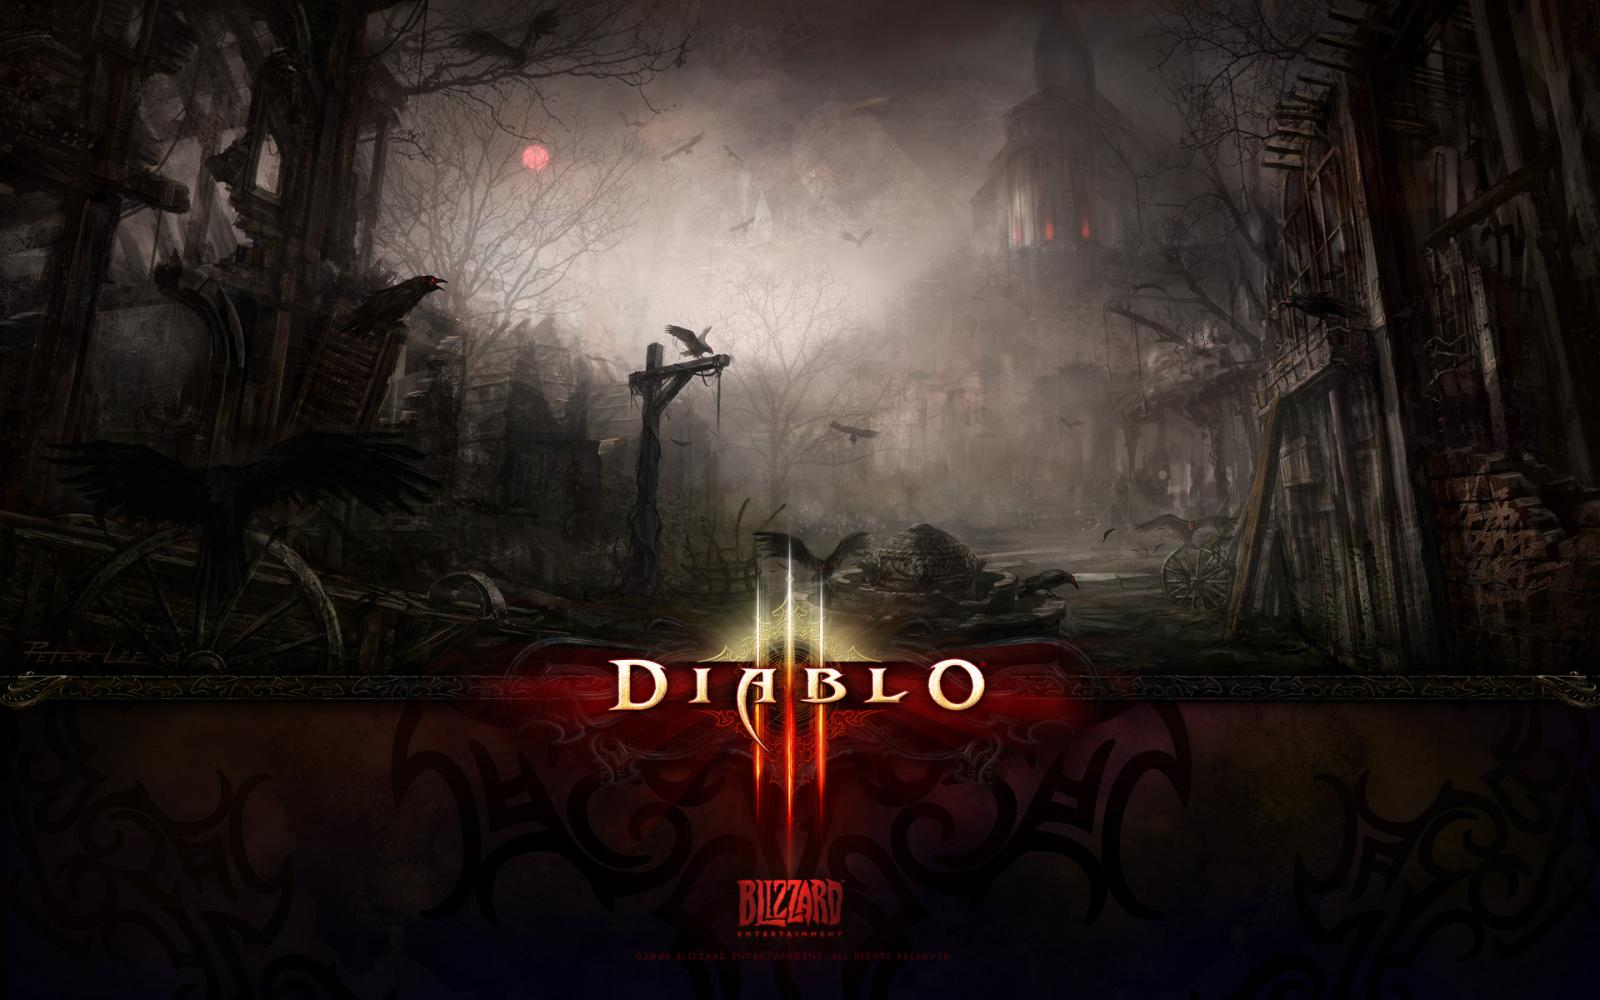 Wallpaper Jeux video Diablo 3 Tristram